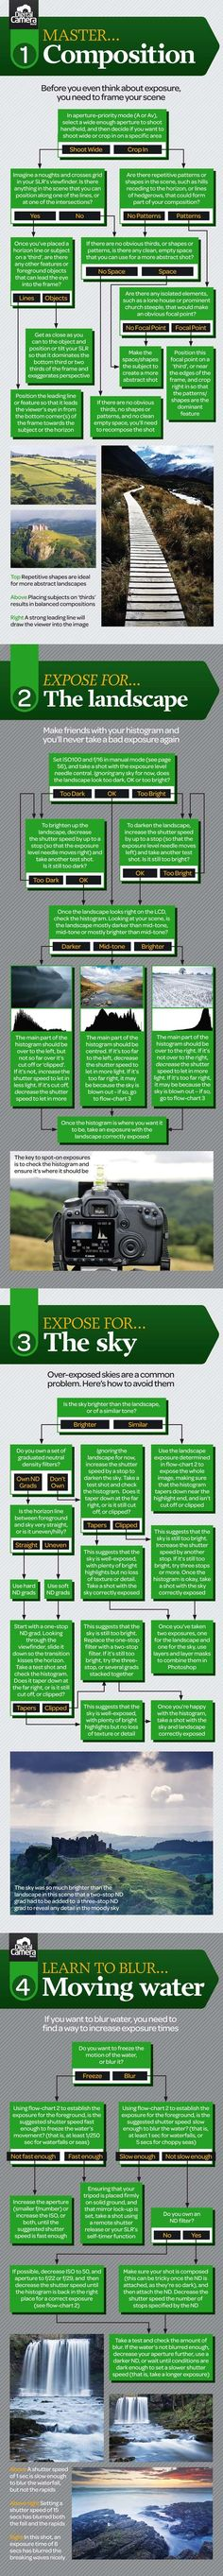 The landscape&8217;s greatest challenges: a free photography cheat sheet